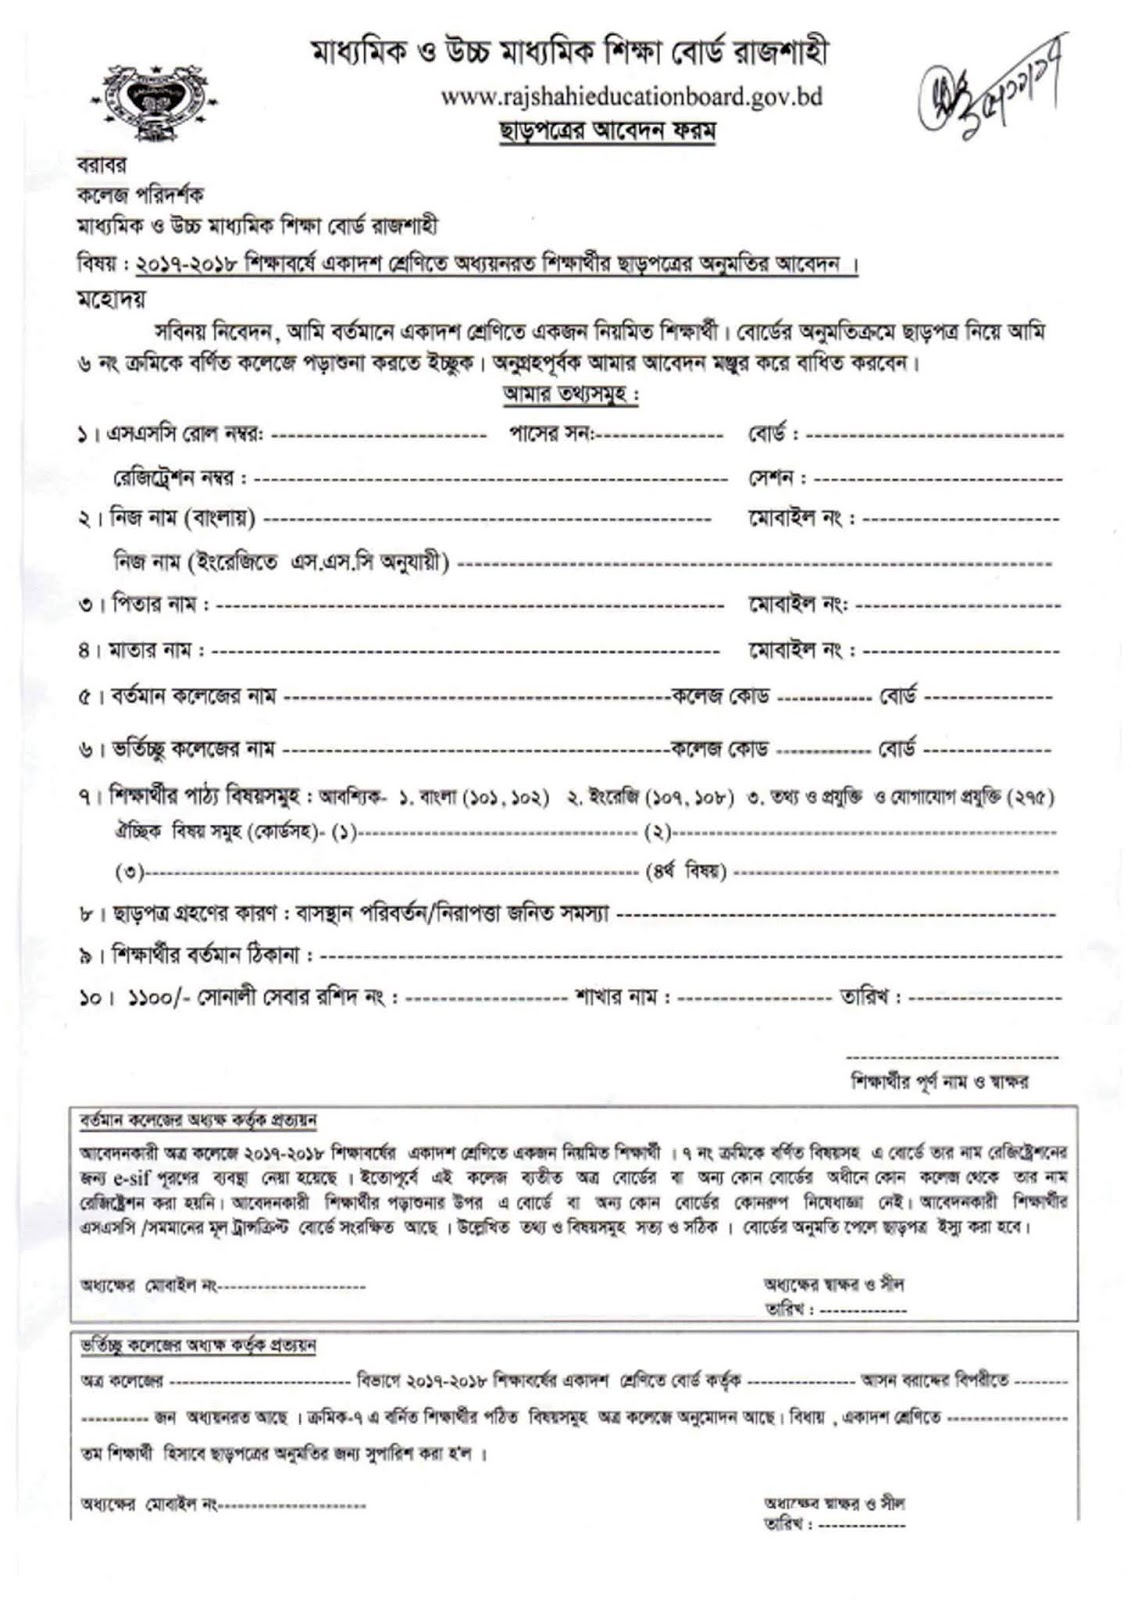 Rajshahi Education Board College Transfer Form